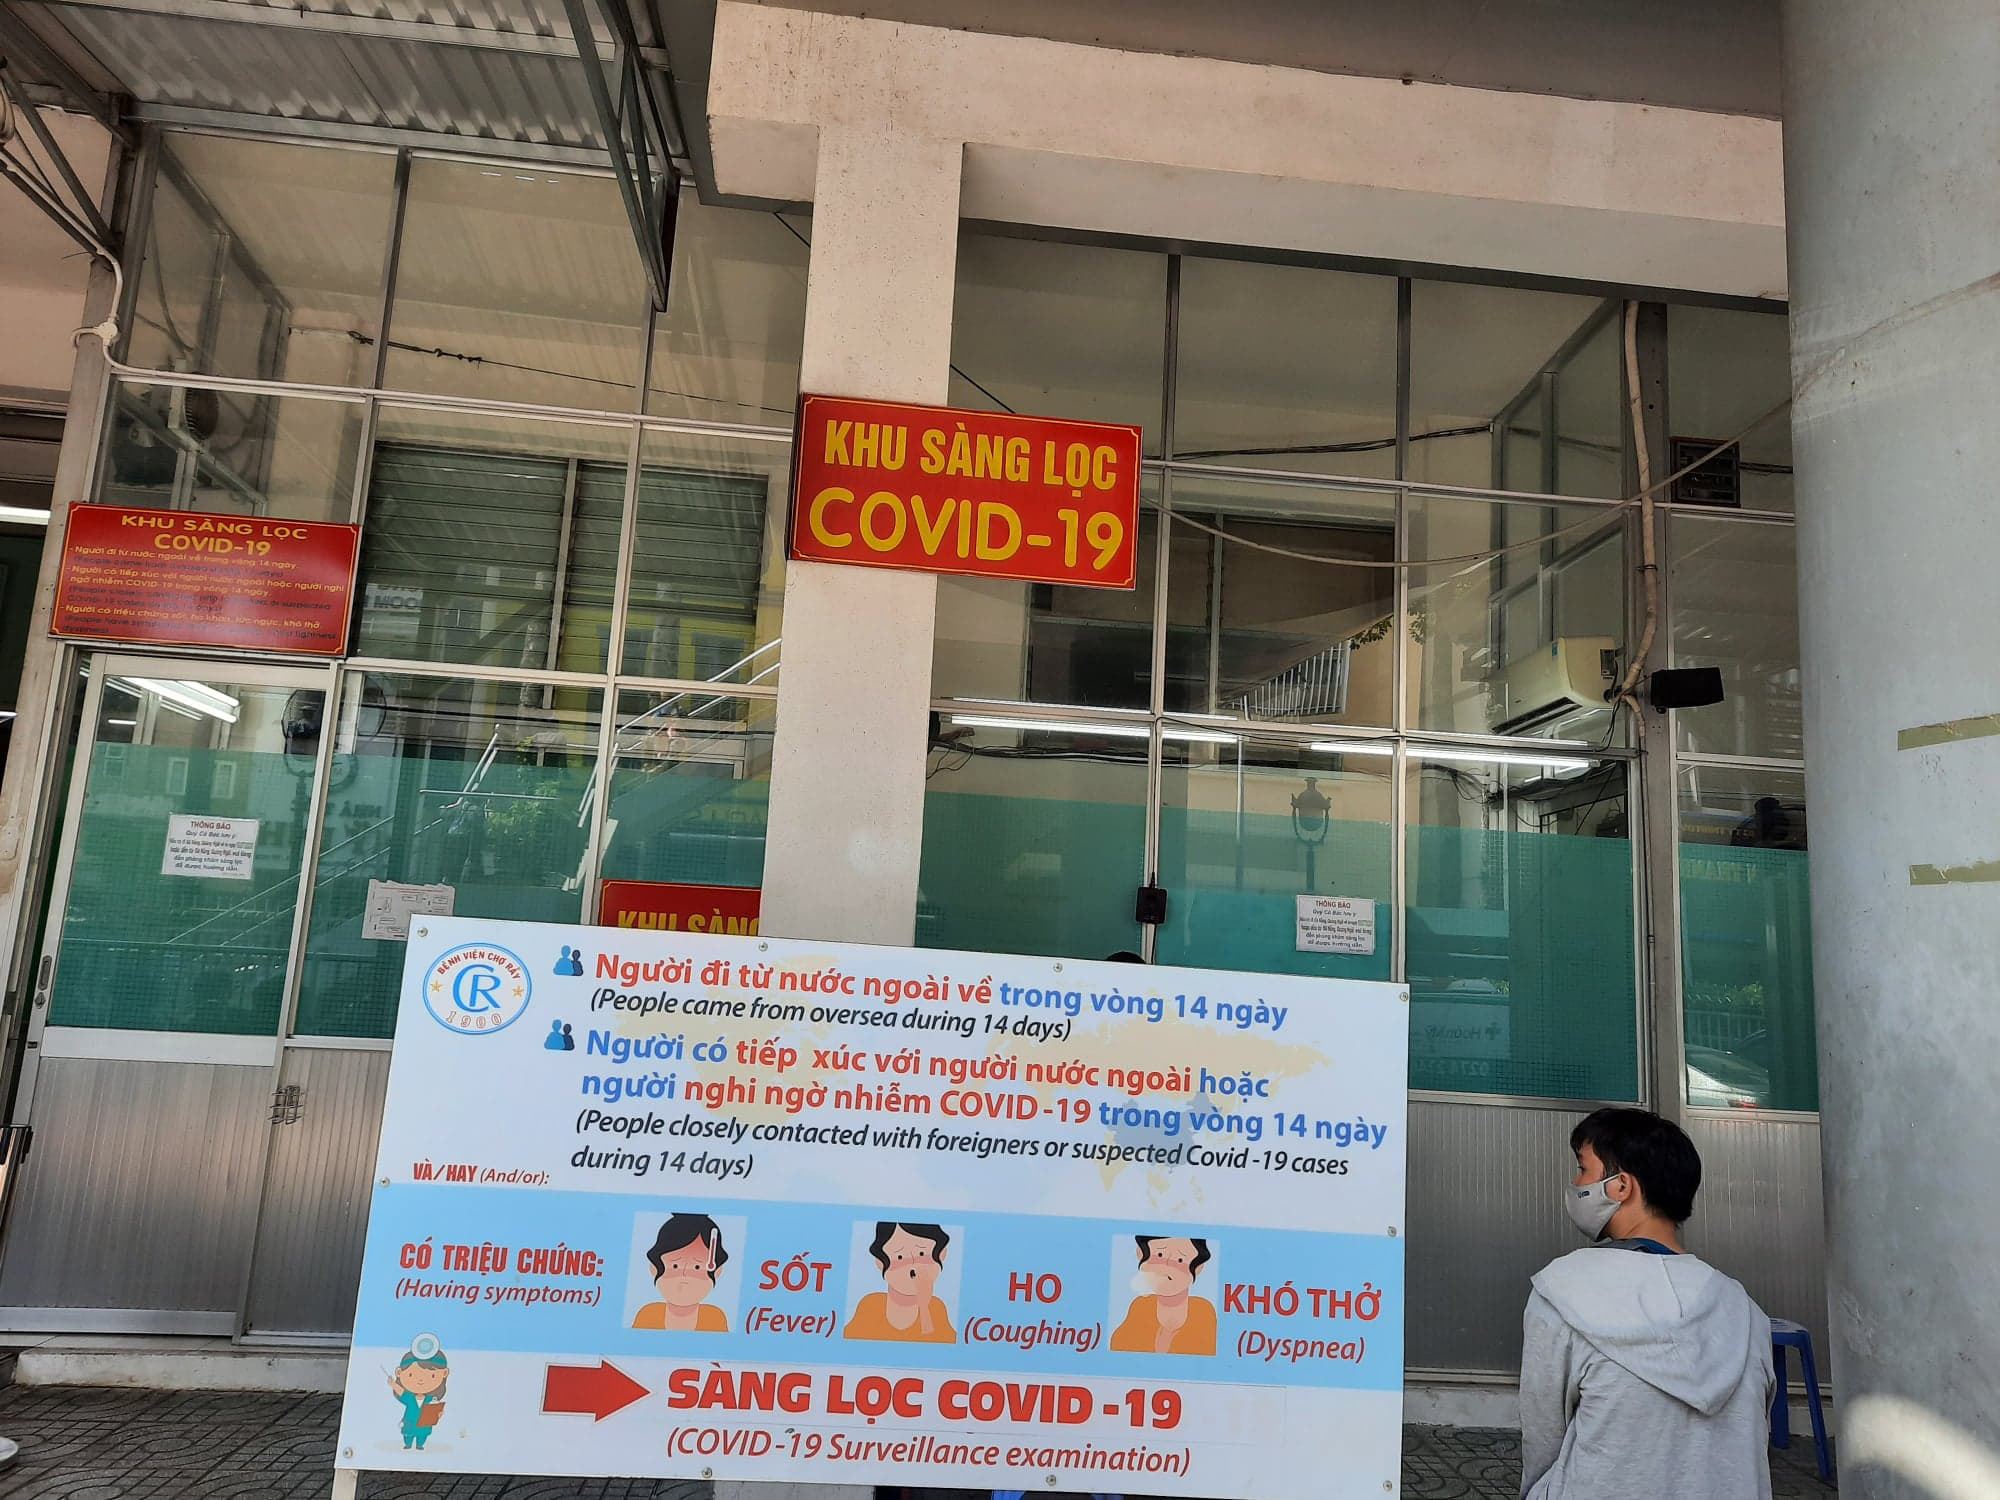 8 more hospitals capable of conclusive coronavirus test in Saigon